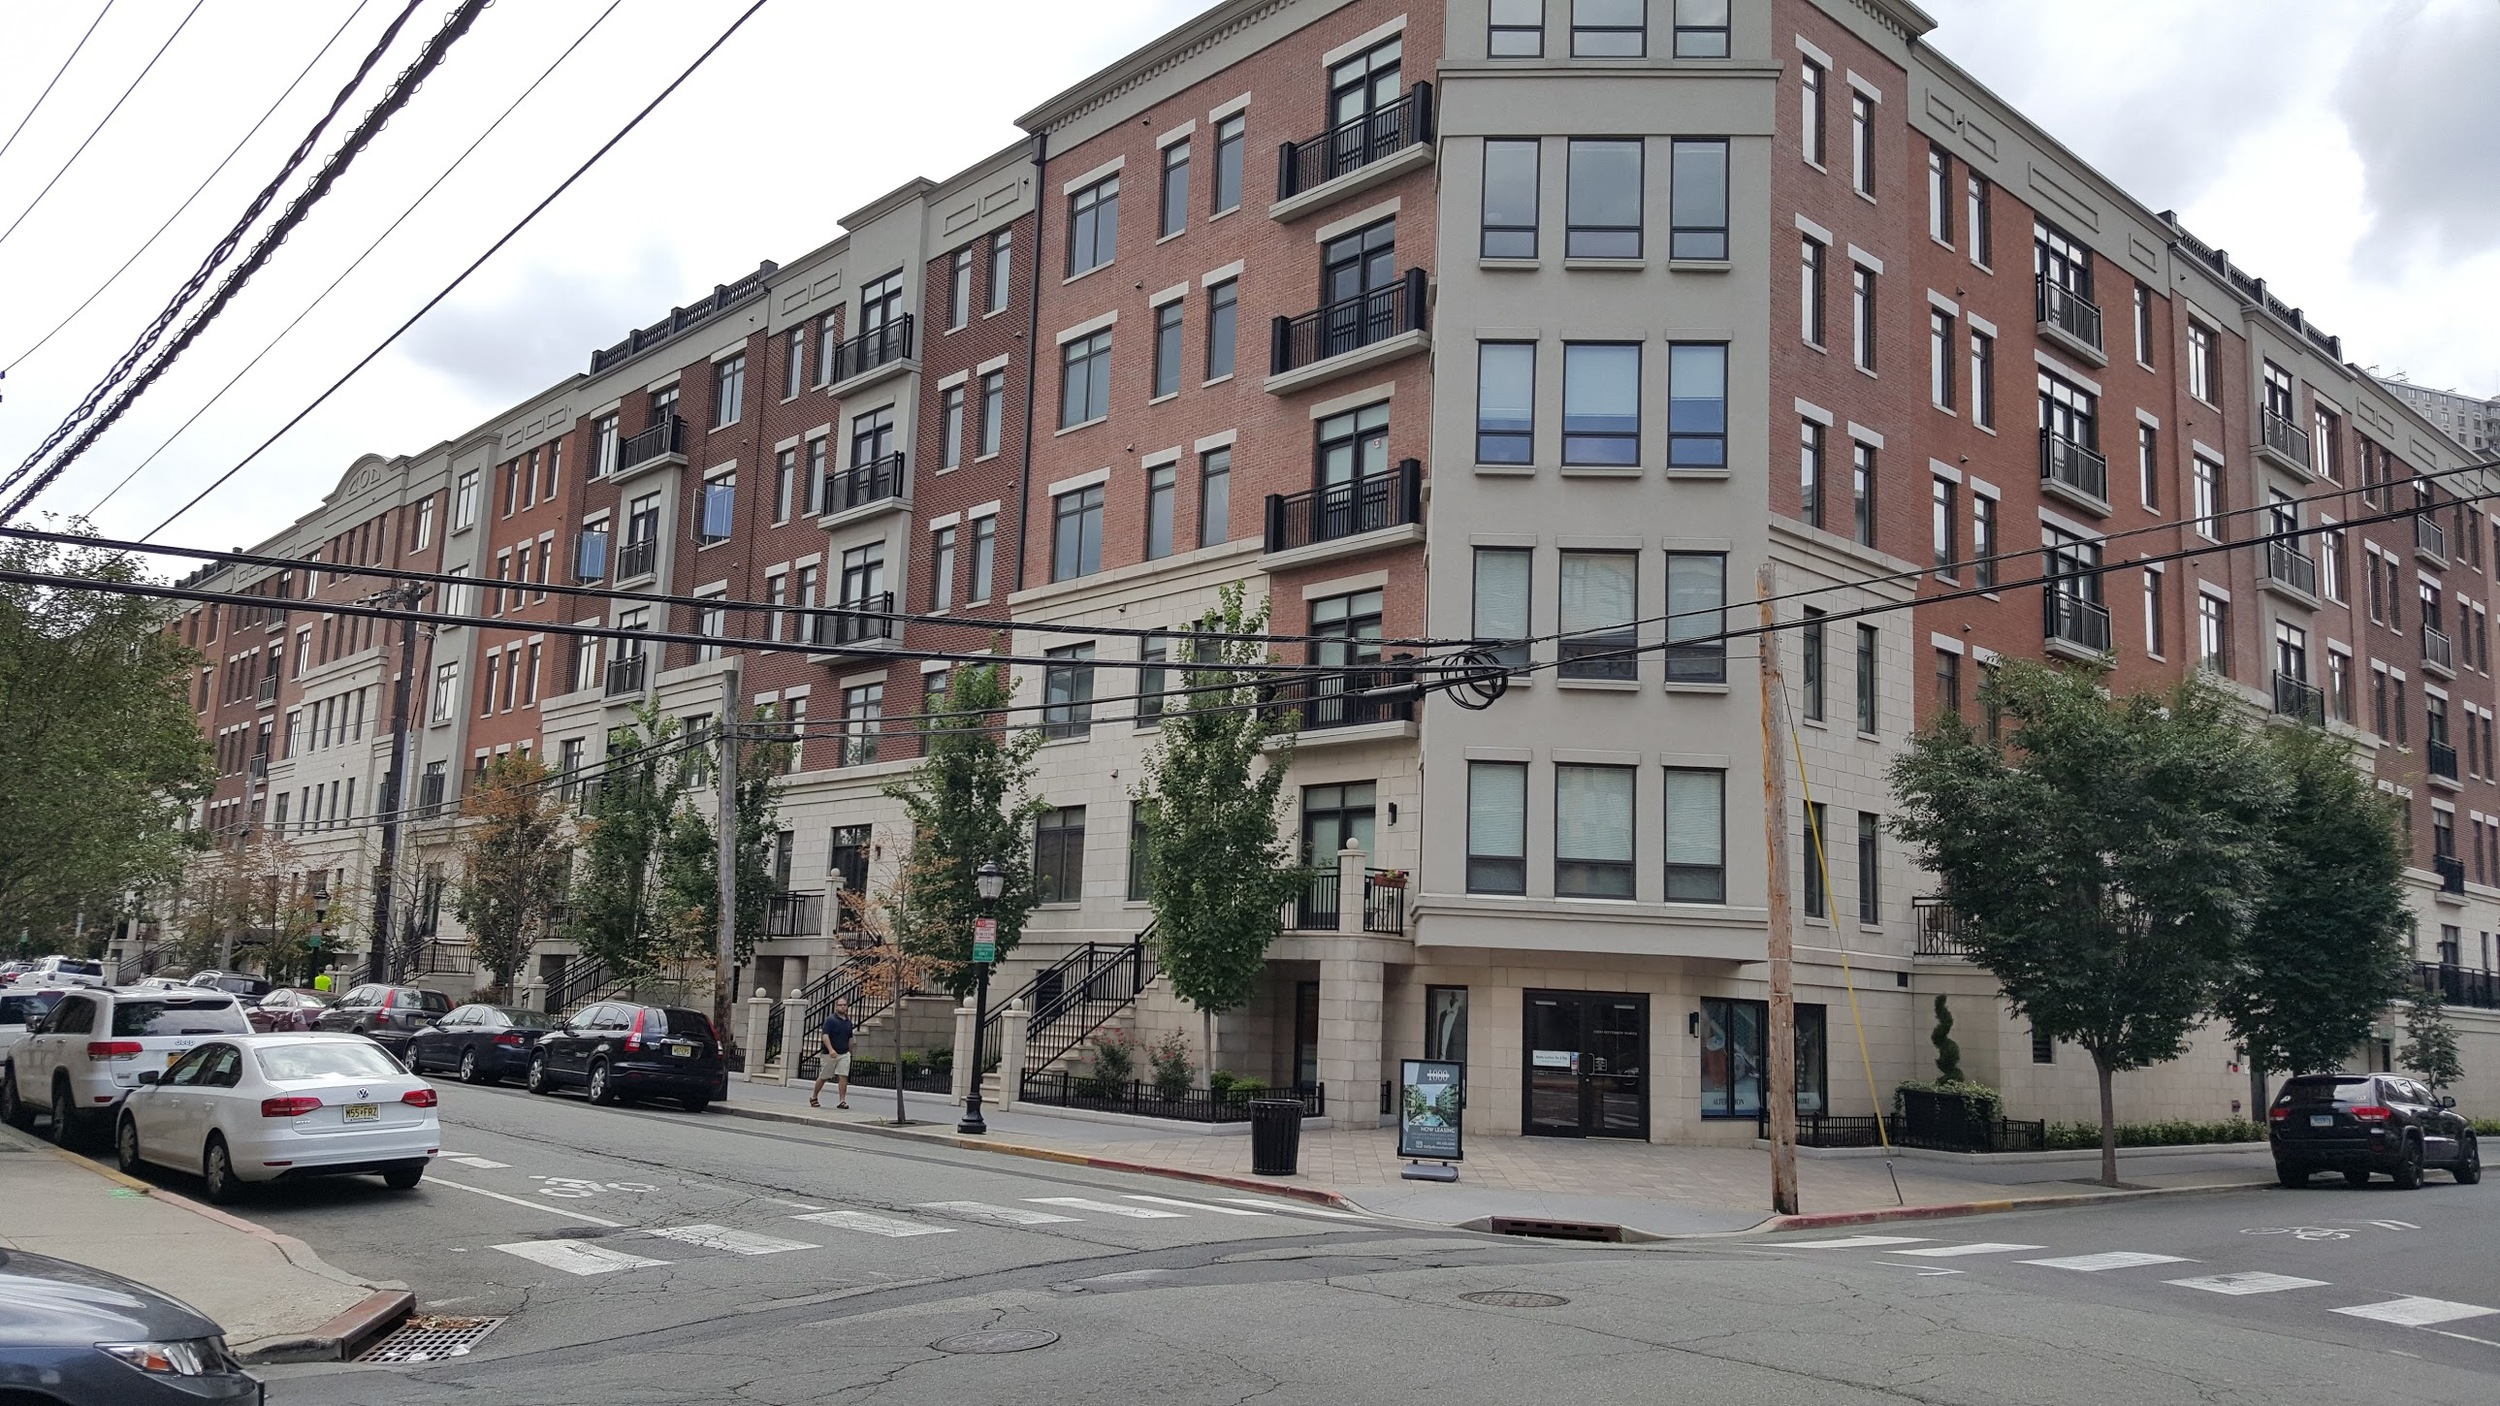 A new medium-rise apartment building in Hoboken taking up an entire block.